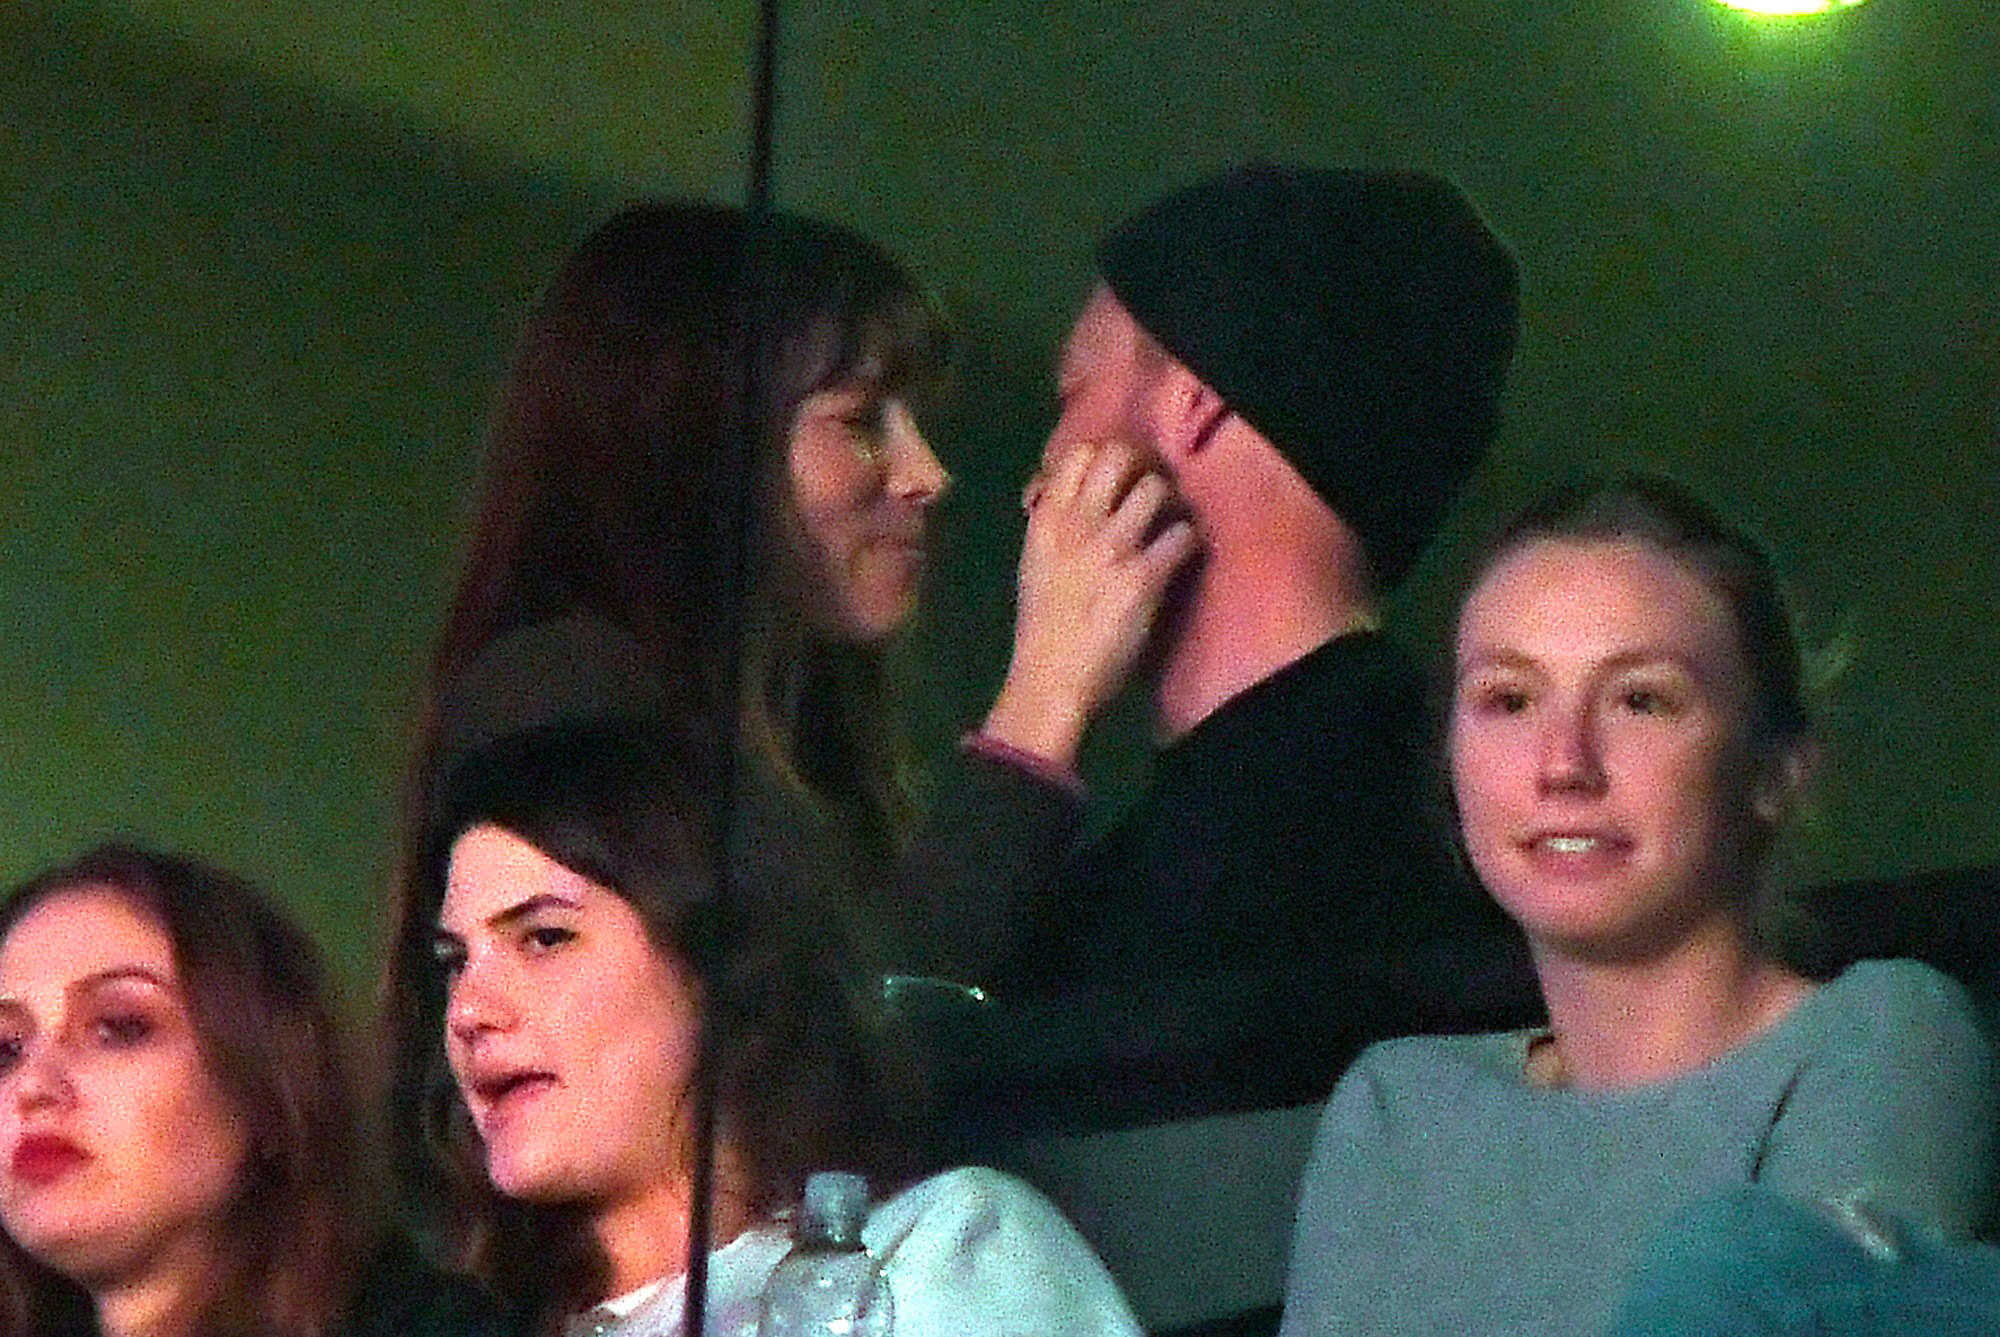 Jessica Biel and Justin Timberlake watch during the second half of an NBA basketball game between the Los Angeles Lakers and the Memphis Grizzlies, Tuesday, Jan. 3, 2017, in Los Angeles. The Lakers won 116-102. (AP Photo/Mark J. Terrill)